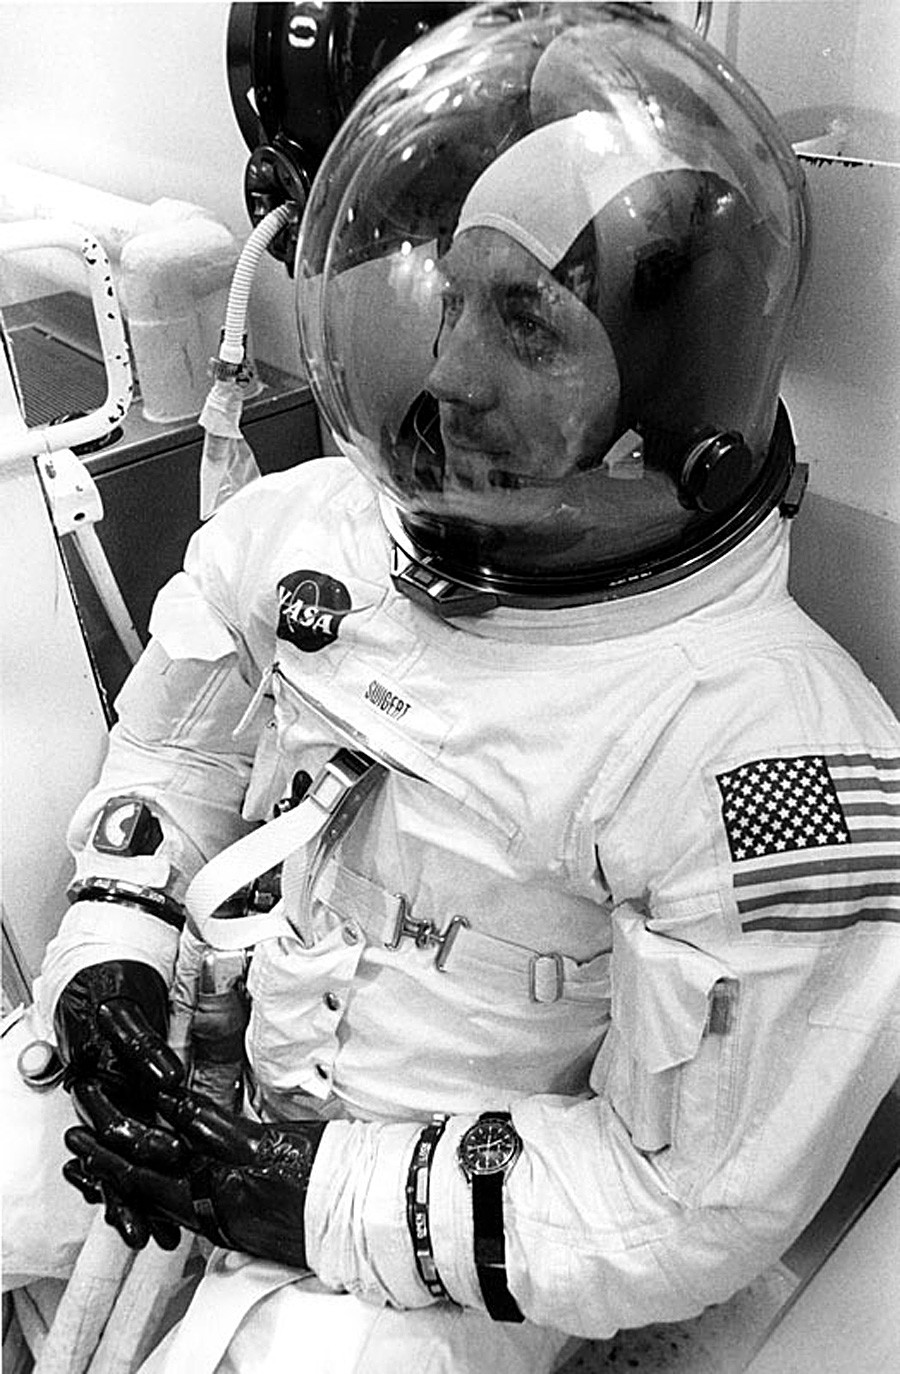 American astronaut Jack Swigert photographed during the Apollo 13 prelaunch countdown, on April 11, 1970, wearing an Omega watch.